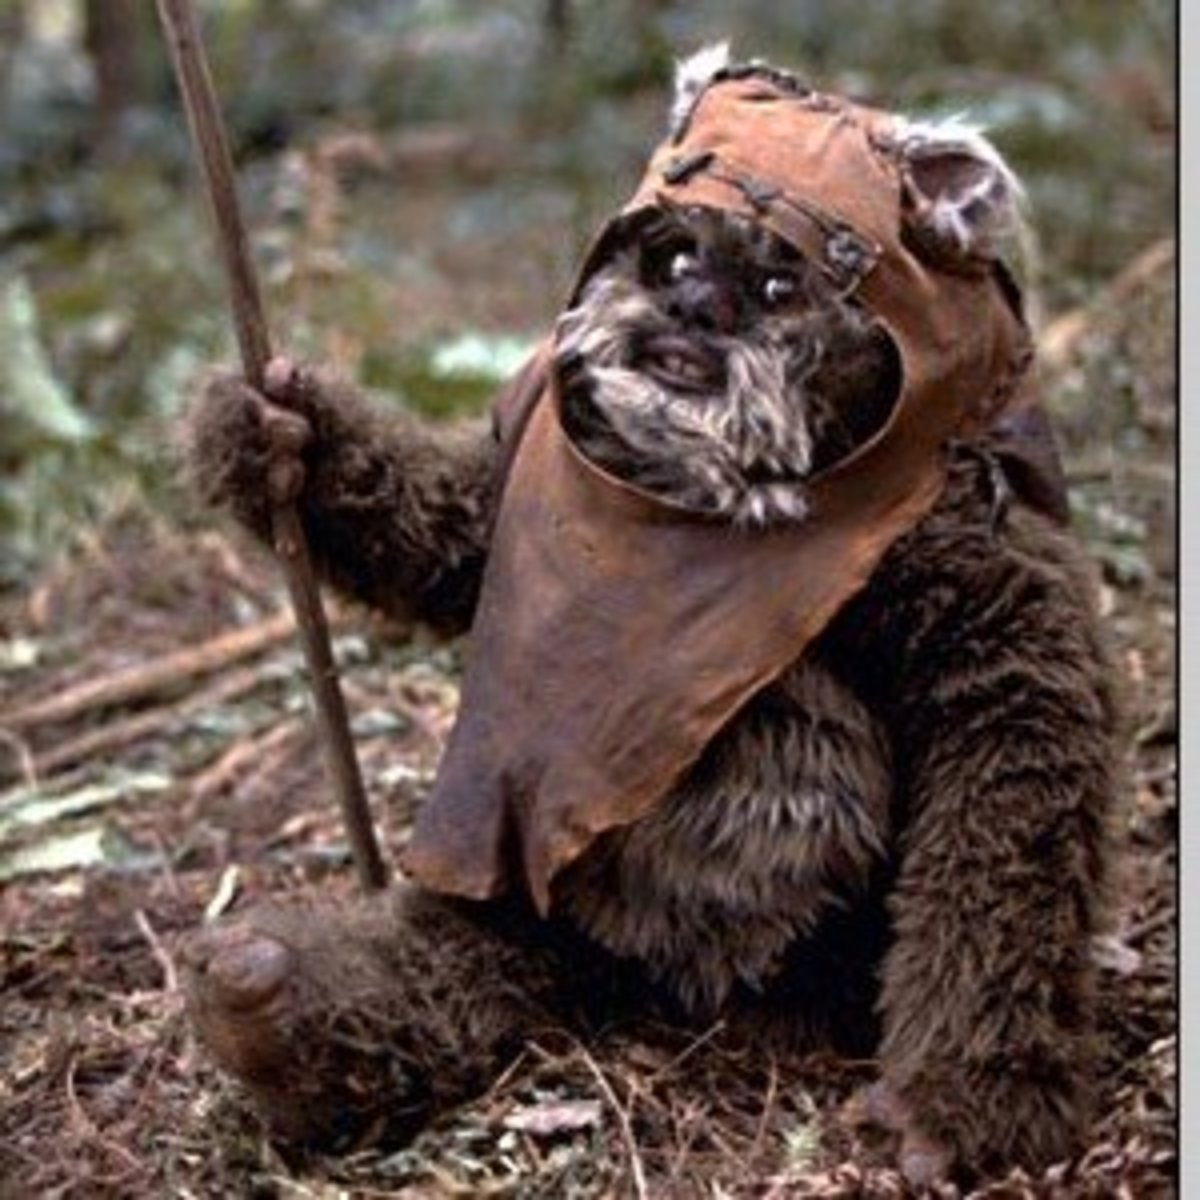 An Ewok in its natural habitat